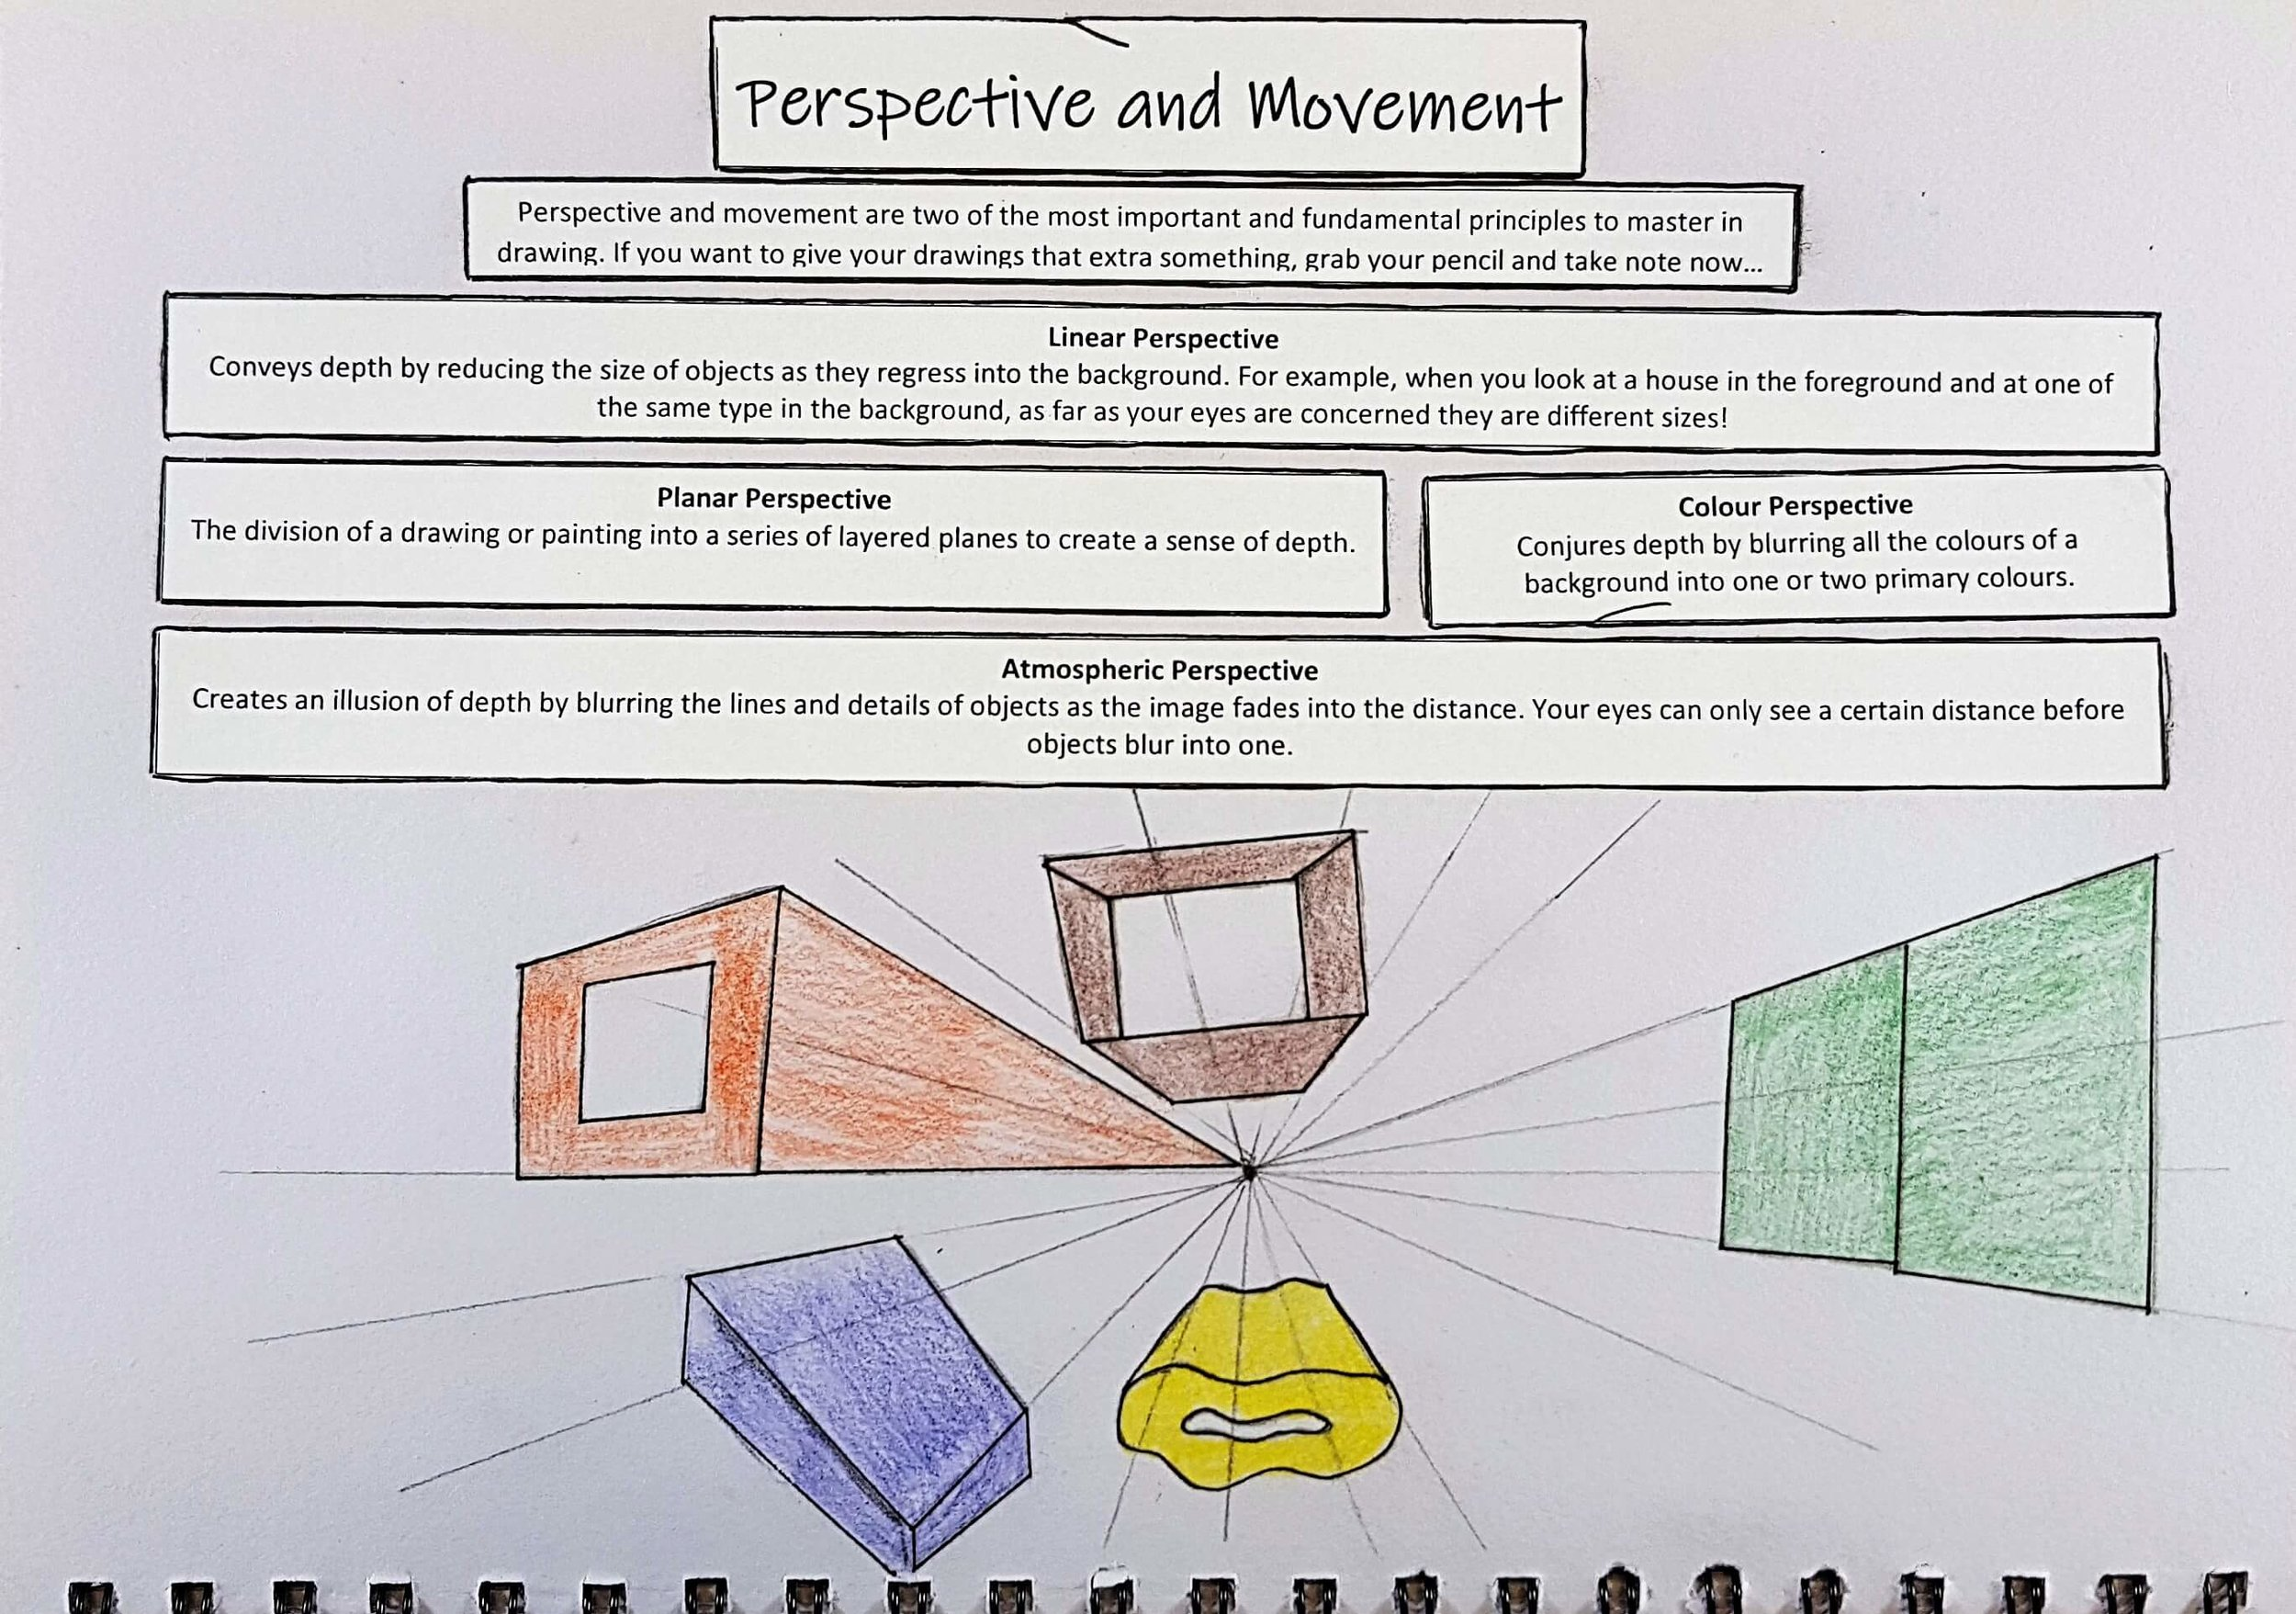 Day 25: Perspective and Movement